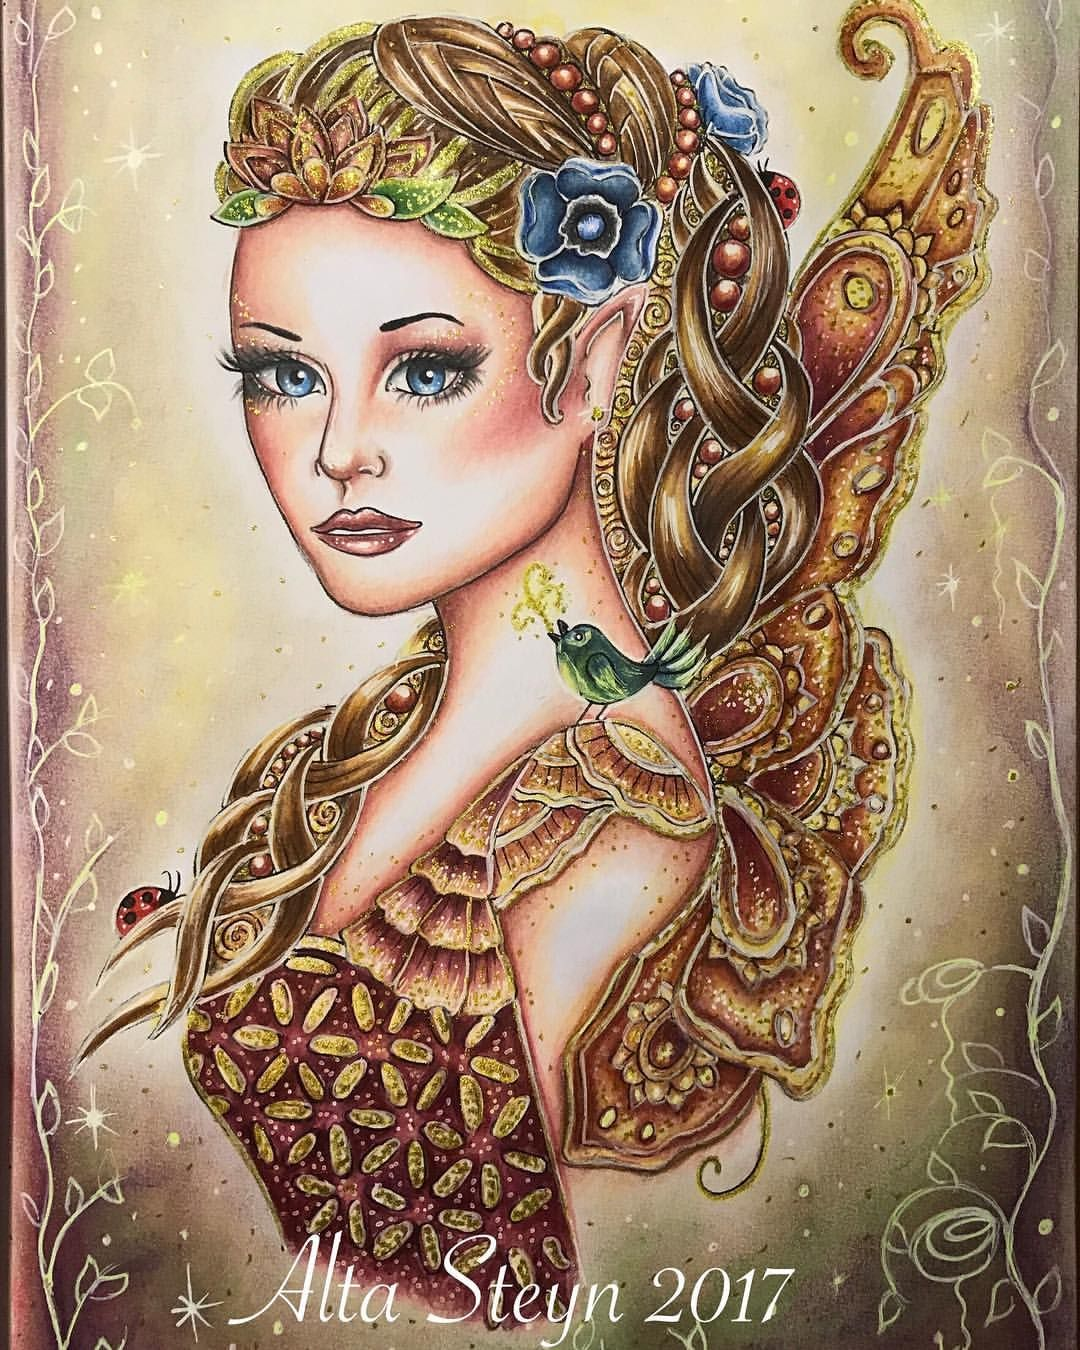 117 Likes 9 Comments Alta Steyn Alta Steyn On Instagram Title Jasmine By Alta Steyn Cb Messages From The Fairies By Doreen Virtue Ilustrations By No